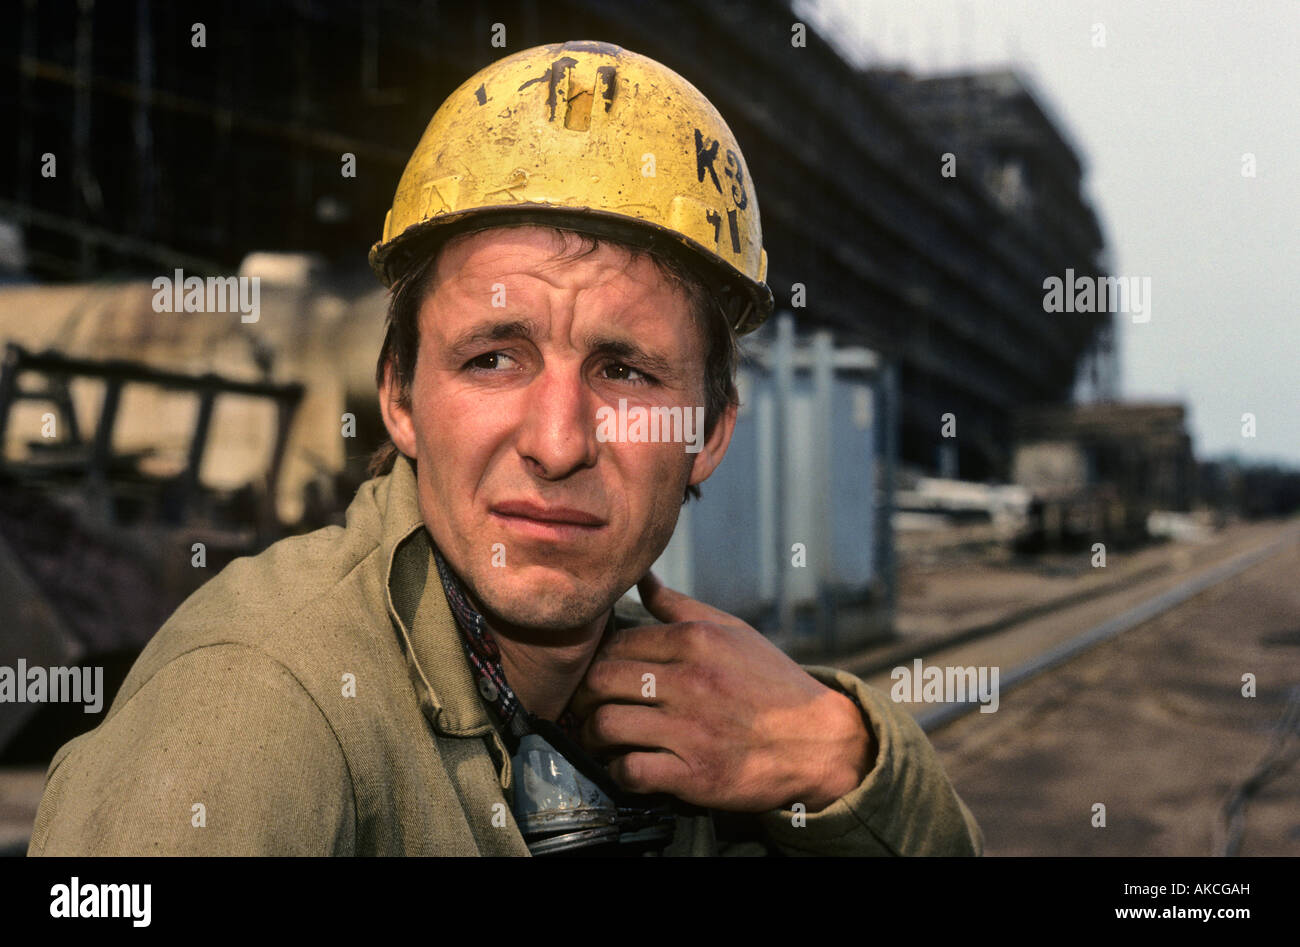 a-polish-worker-wearing-helmet-and-goggl